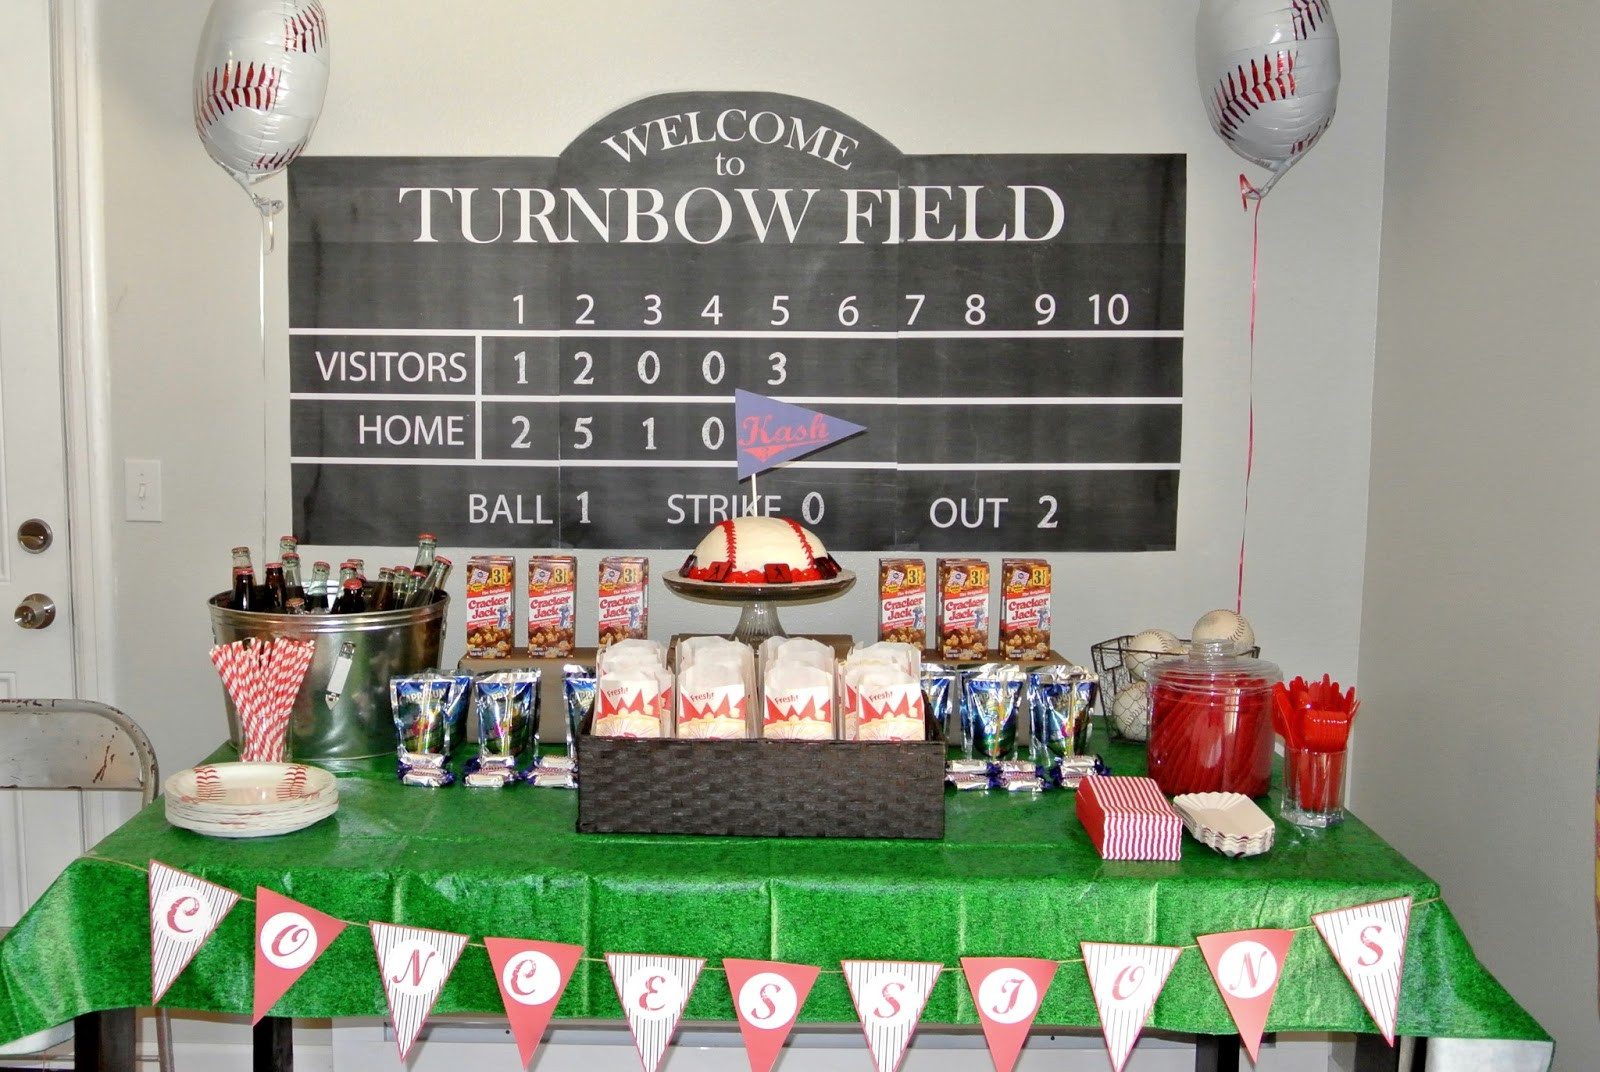 Best ideas about Baseball Themed Birthday Party . Save or Pin Team Turnbow baseball themed party Now.